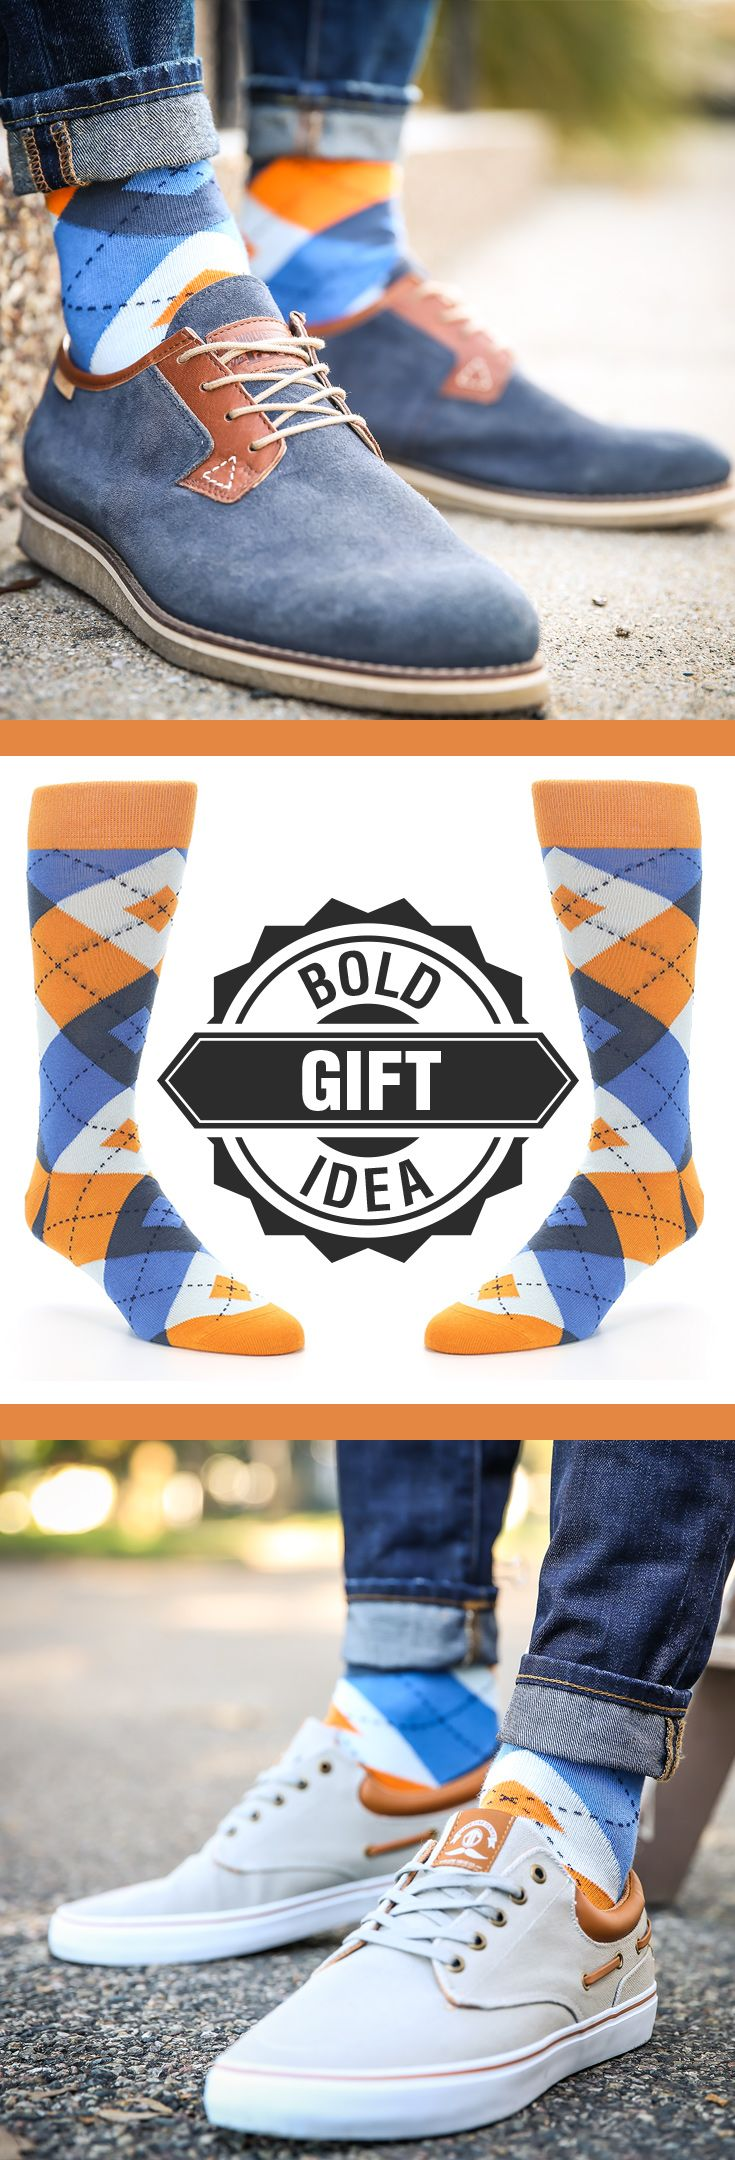 Socks are a sure thing for the holidays. If you have someone with a bold personality, consider some statement orange and blue argyle socks. Shop these socks and more.  c/o Wolverine Worldwide and Radii